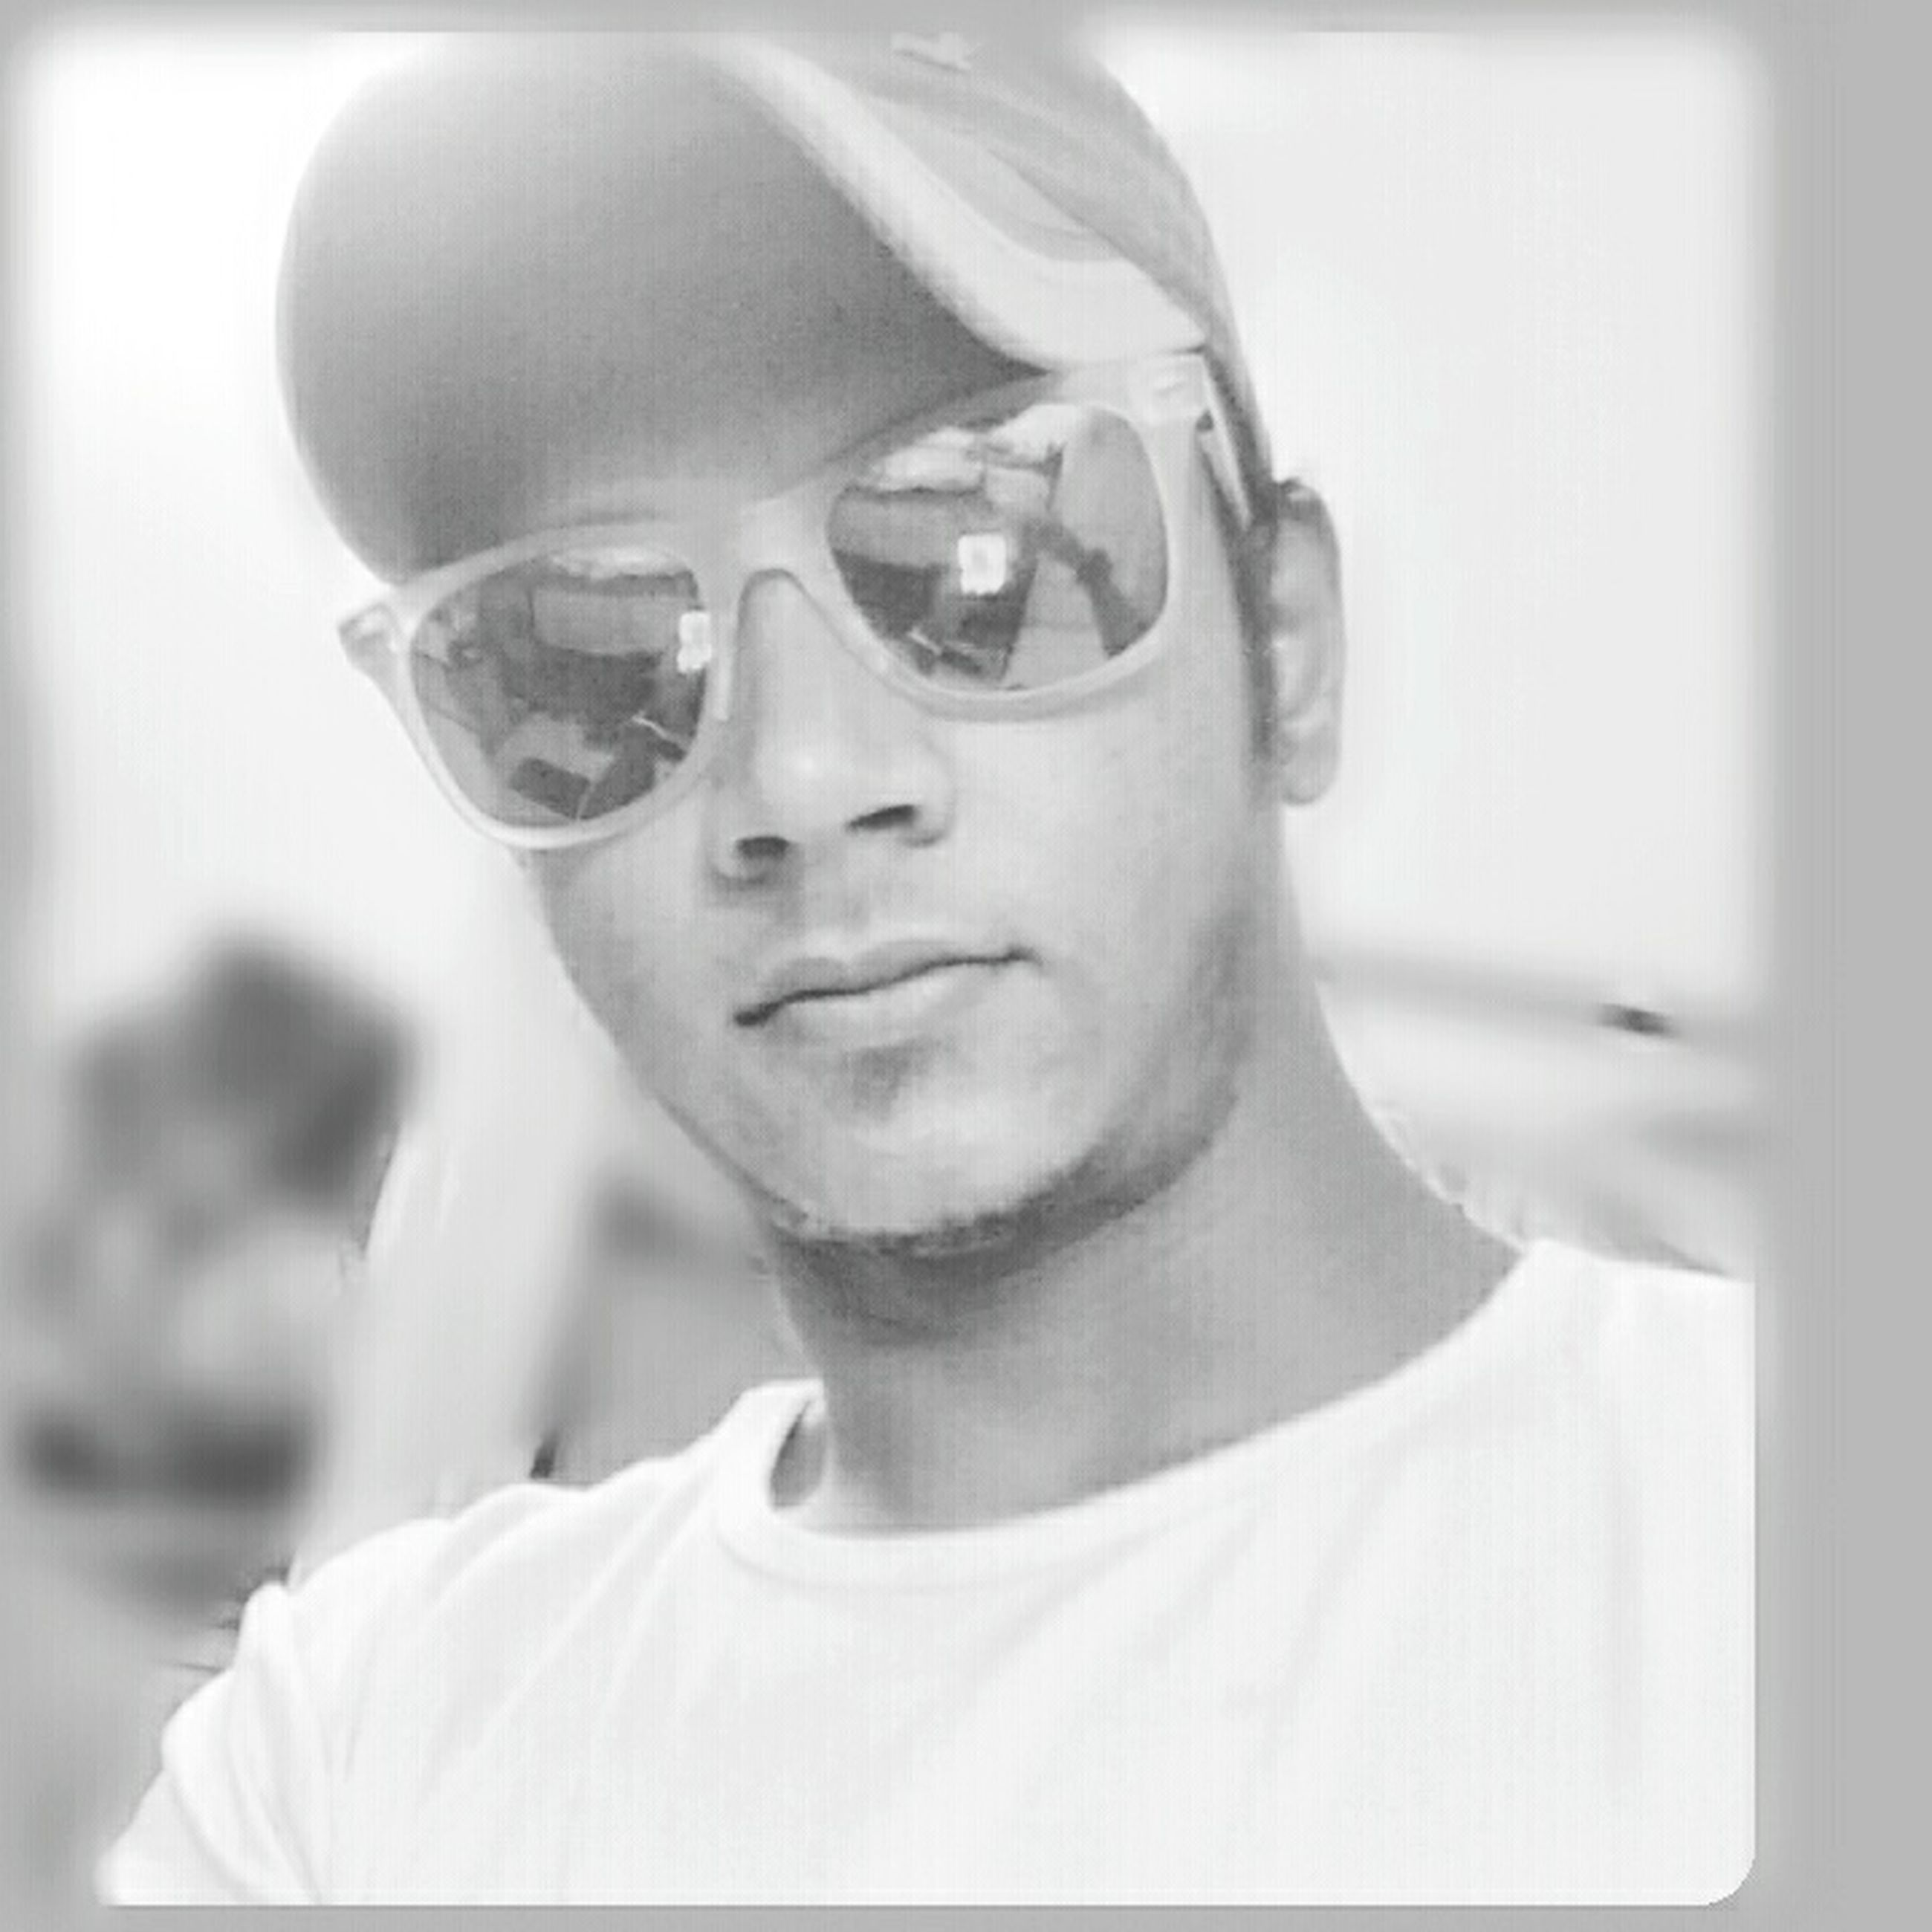 looking at camera, person, lifestyles, portrait, transfer print, leisure activity, headshot, front view, young adult, young men, indoors, casual clothing, auto post production filter, close-up, focus on foreground, sunglasses, head and shoulders, smiling